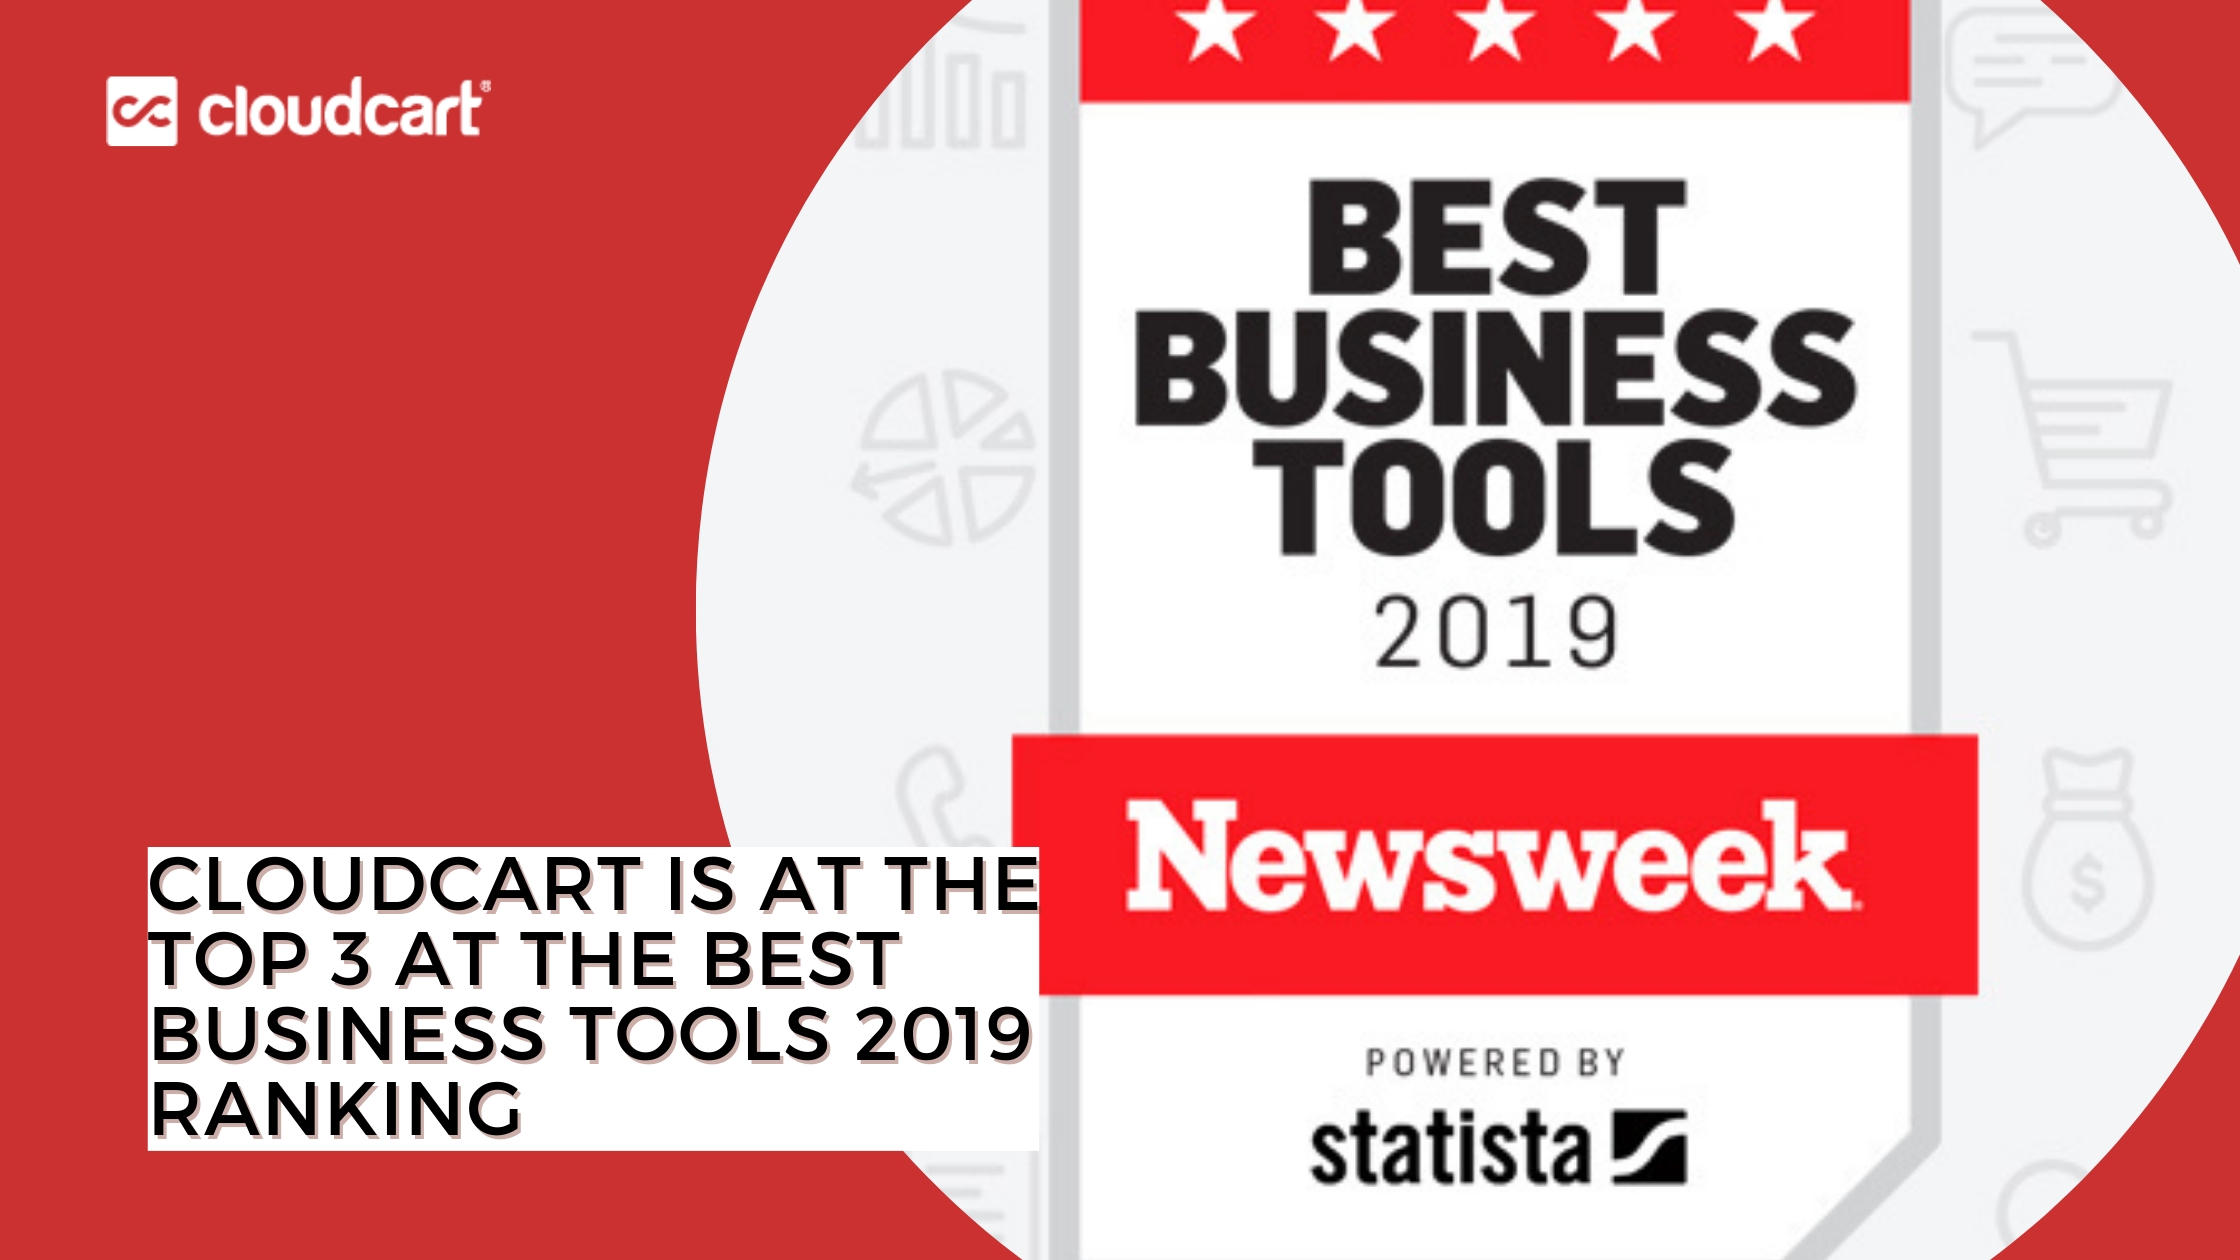 CloudCart is at the Top 3 at the Best Business Tools 2019 ranking